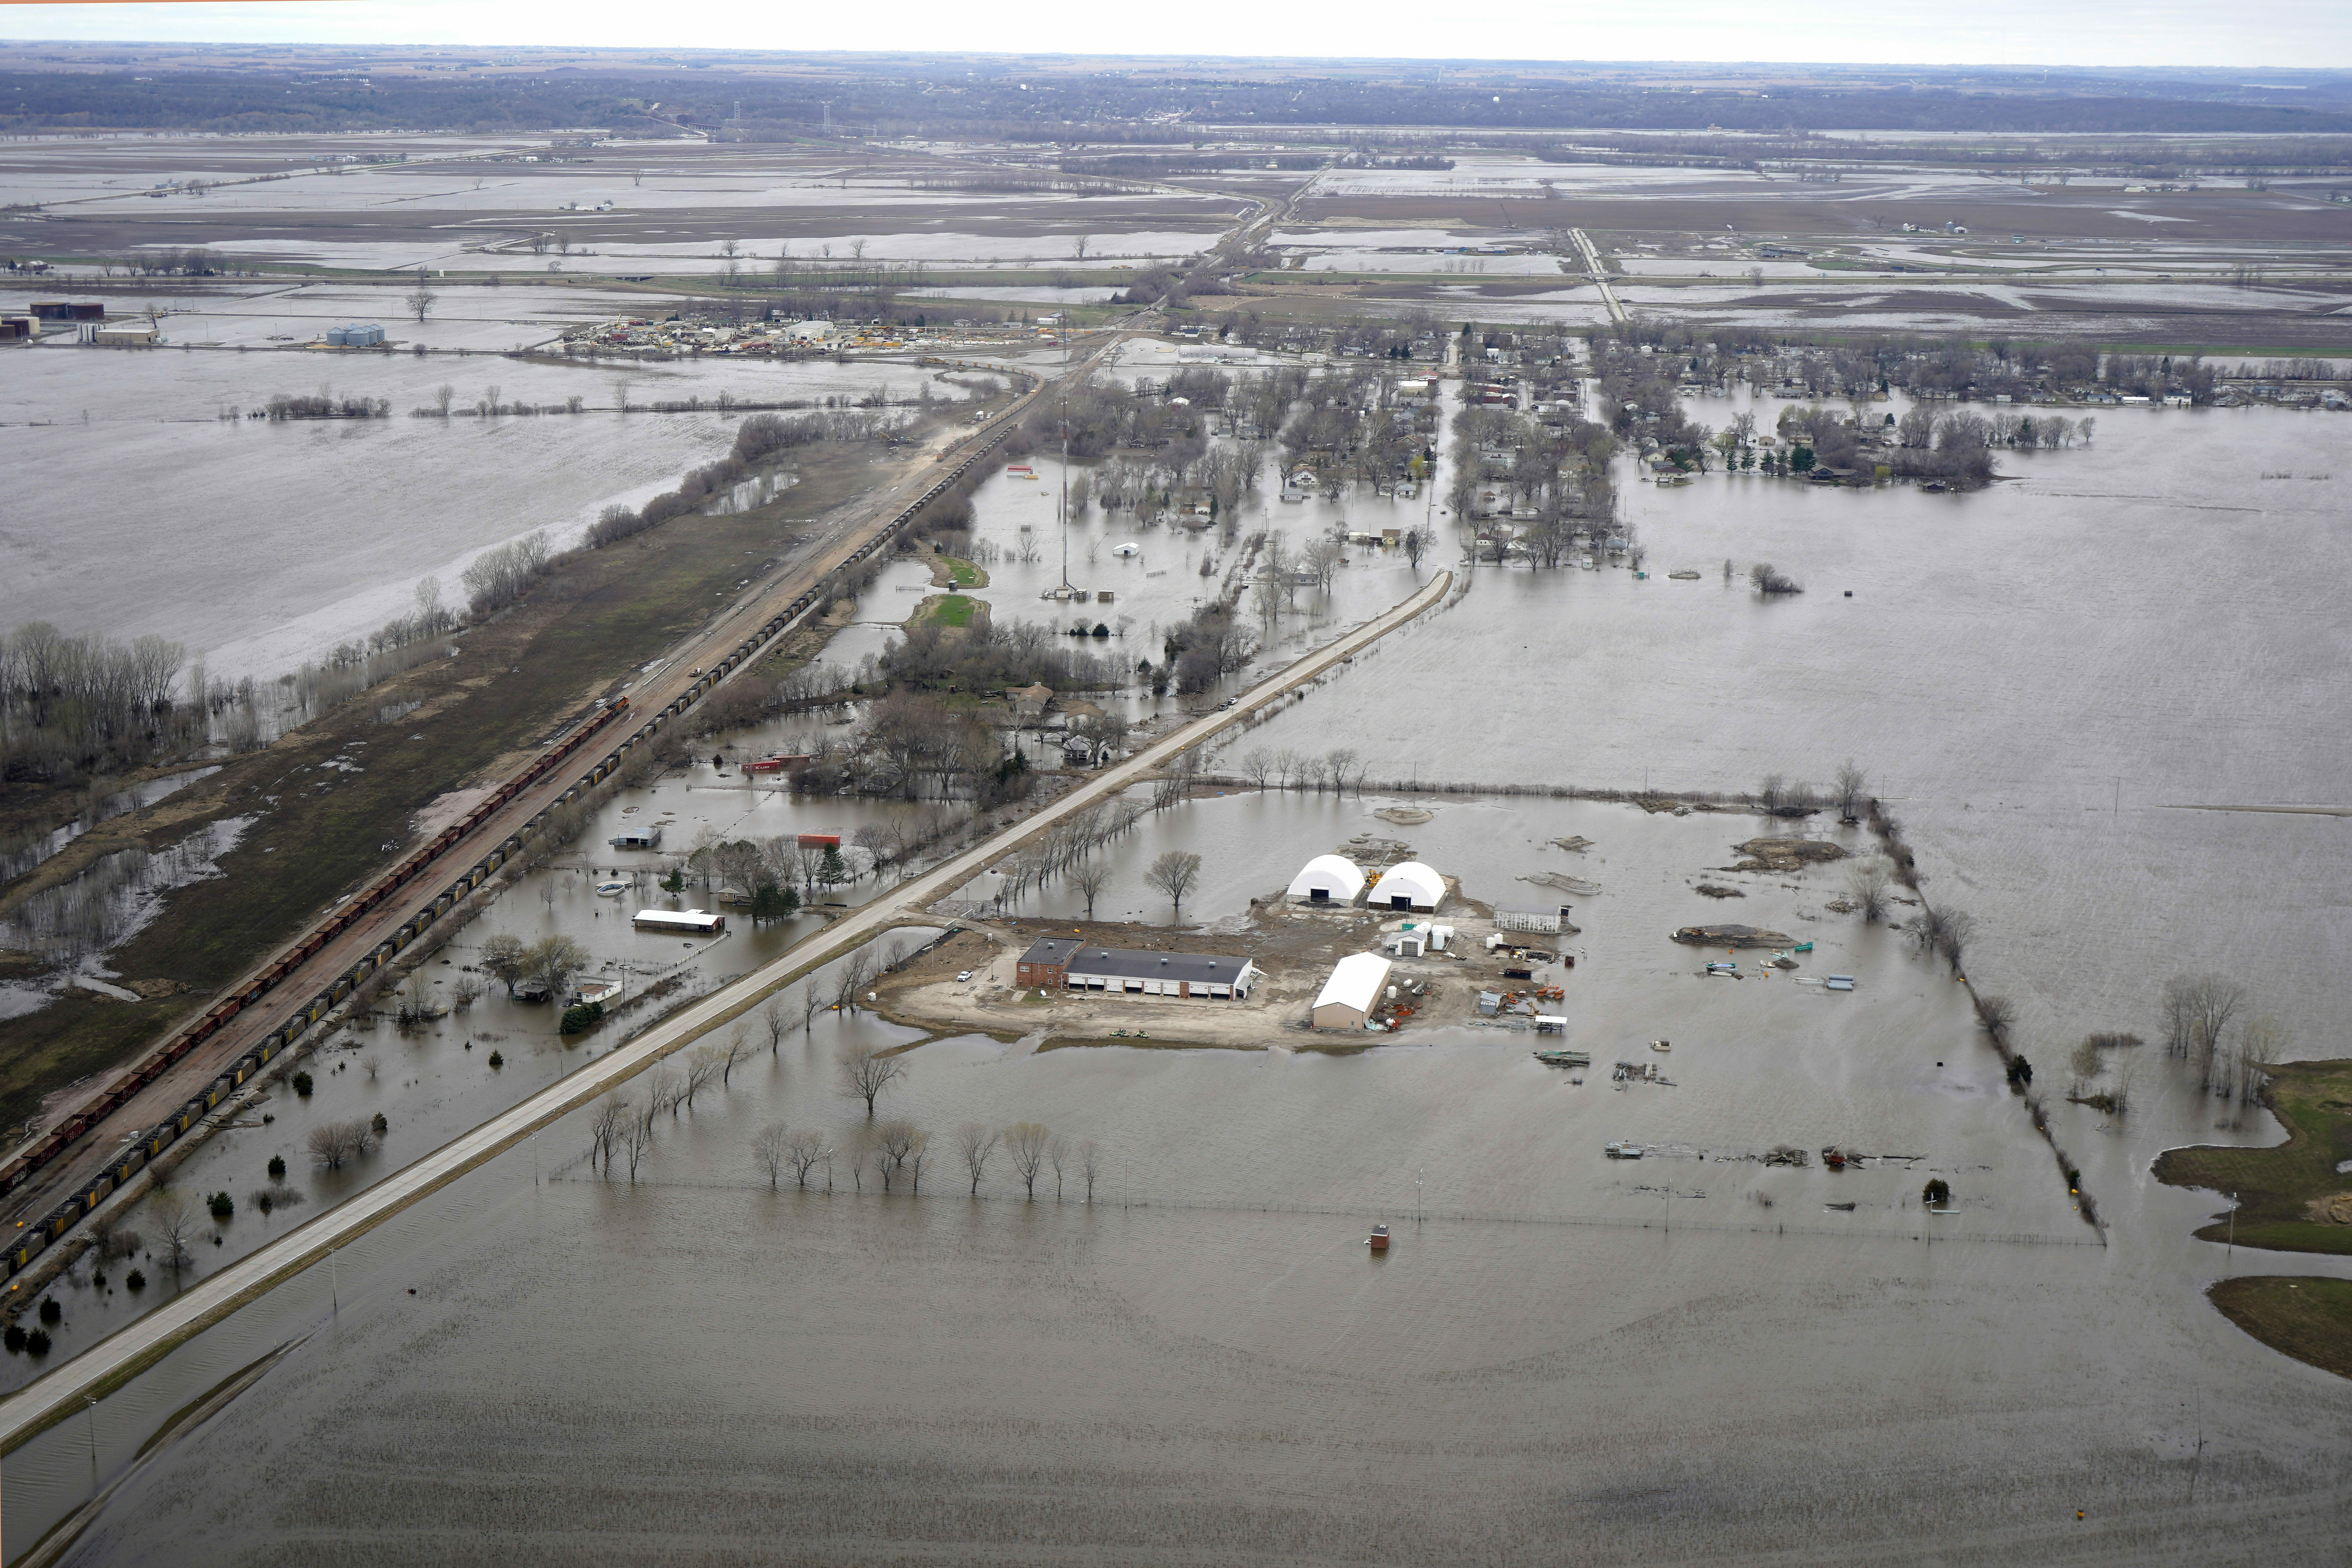 The flooded town of Pacific Junction, Iowa, on April 12, 2019.